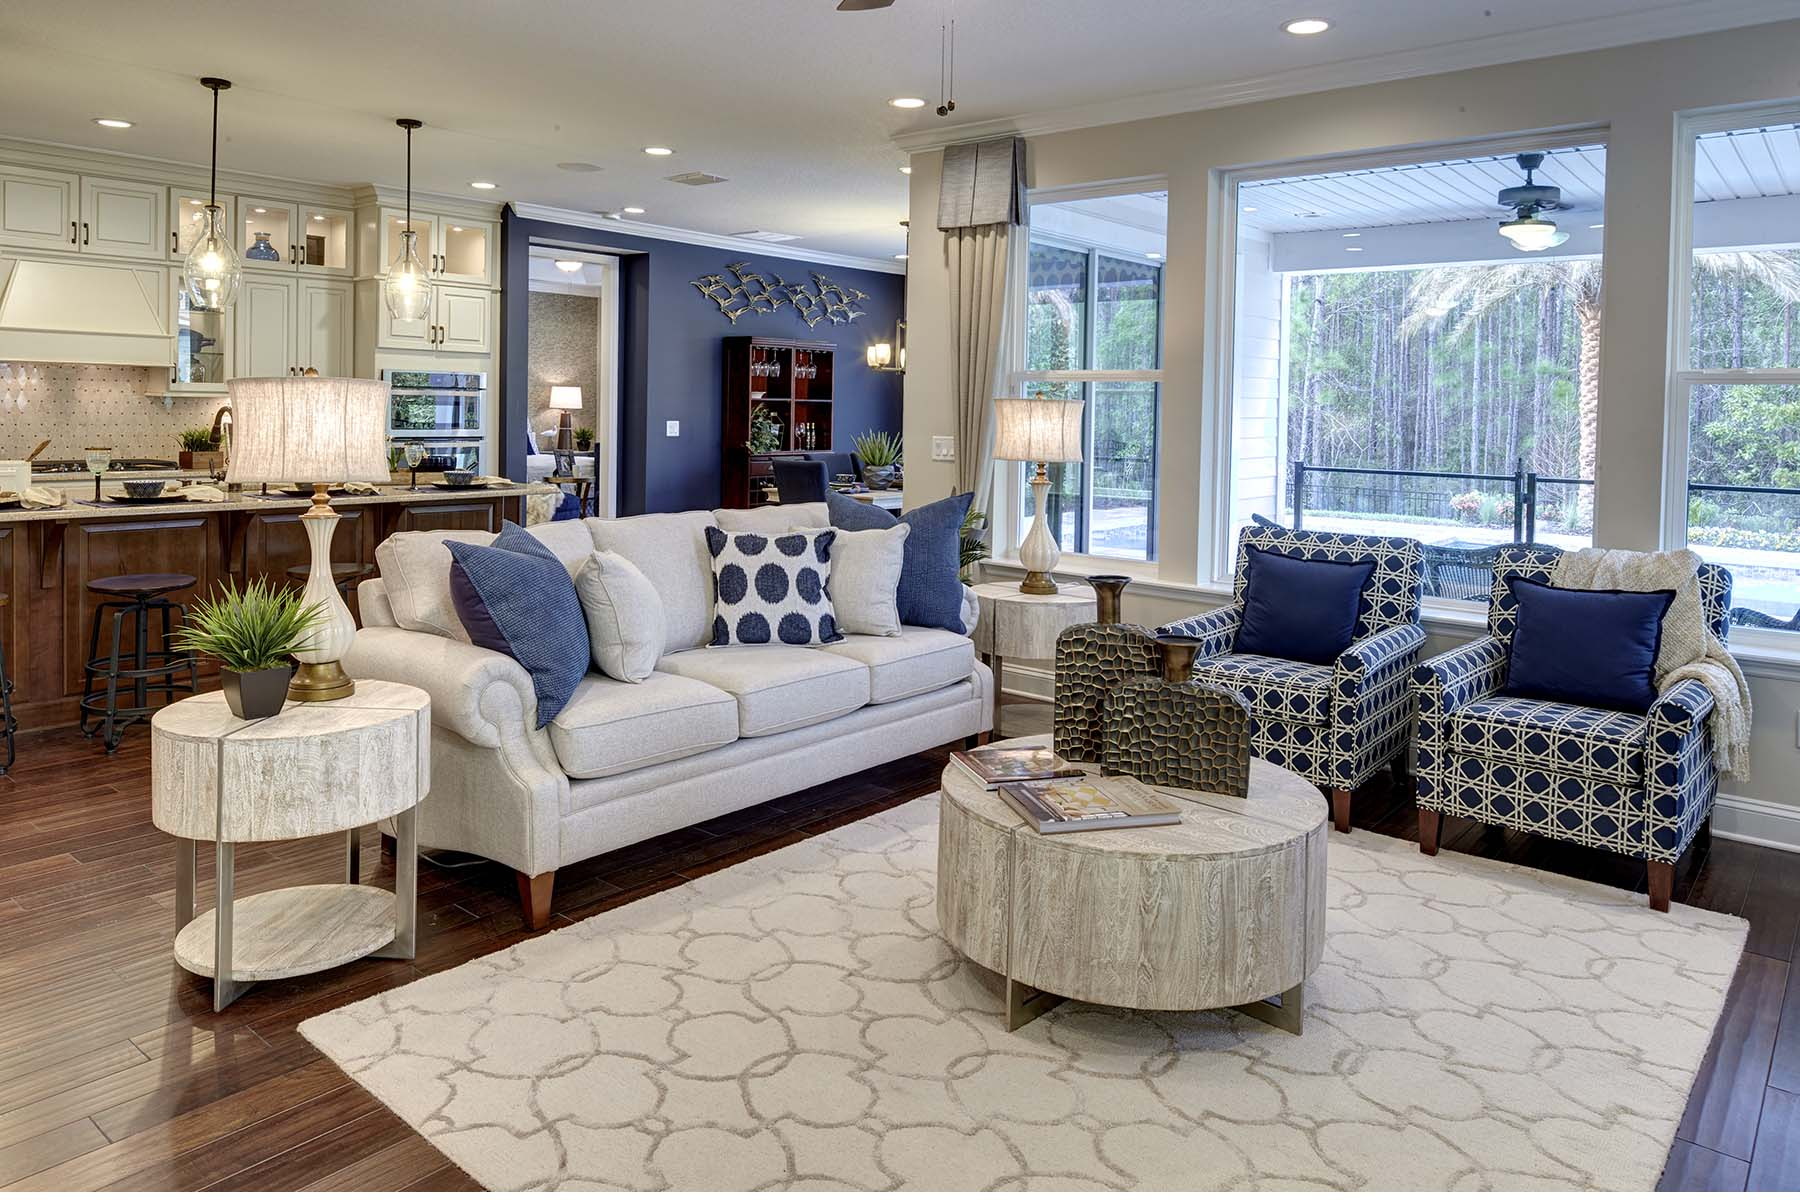 Beauclair Plan Greatroom at RiverTown - Arbors in St. Johns Florida by Mattamy Homes